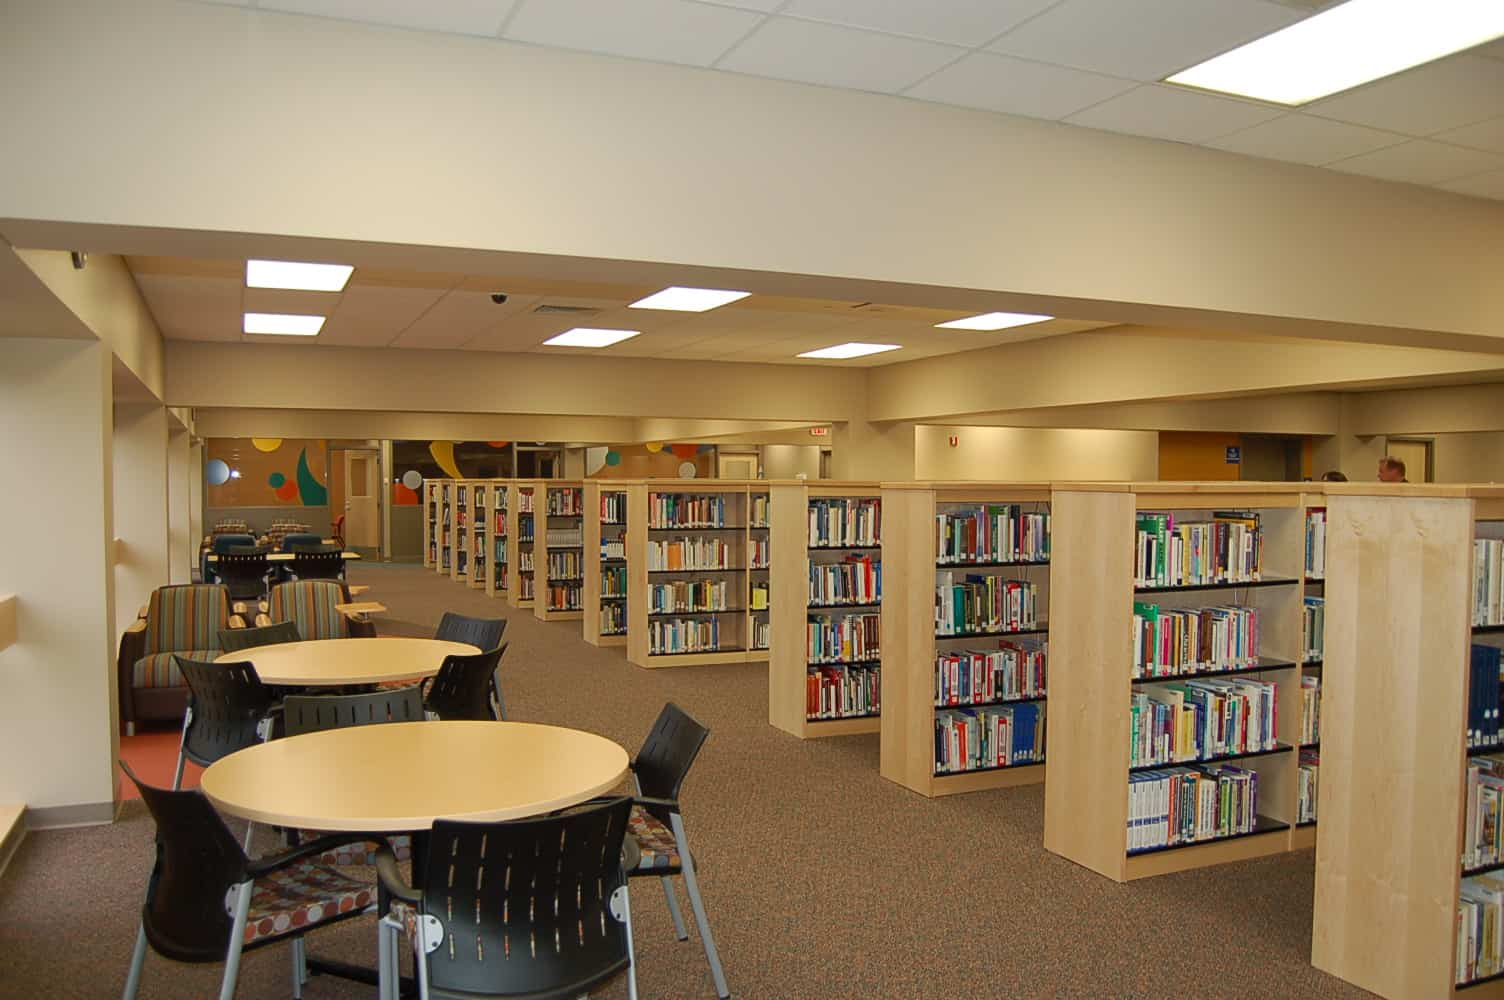 The Academic Social Space Planning Libraries for Education Clients